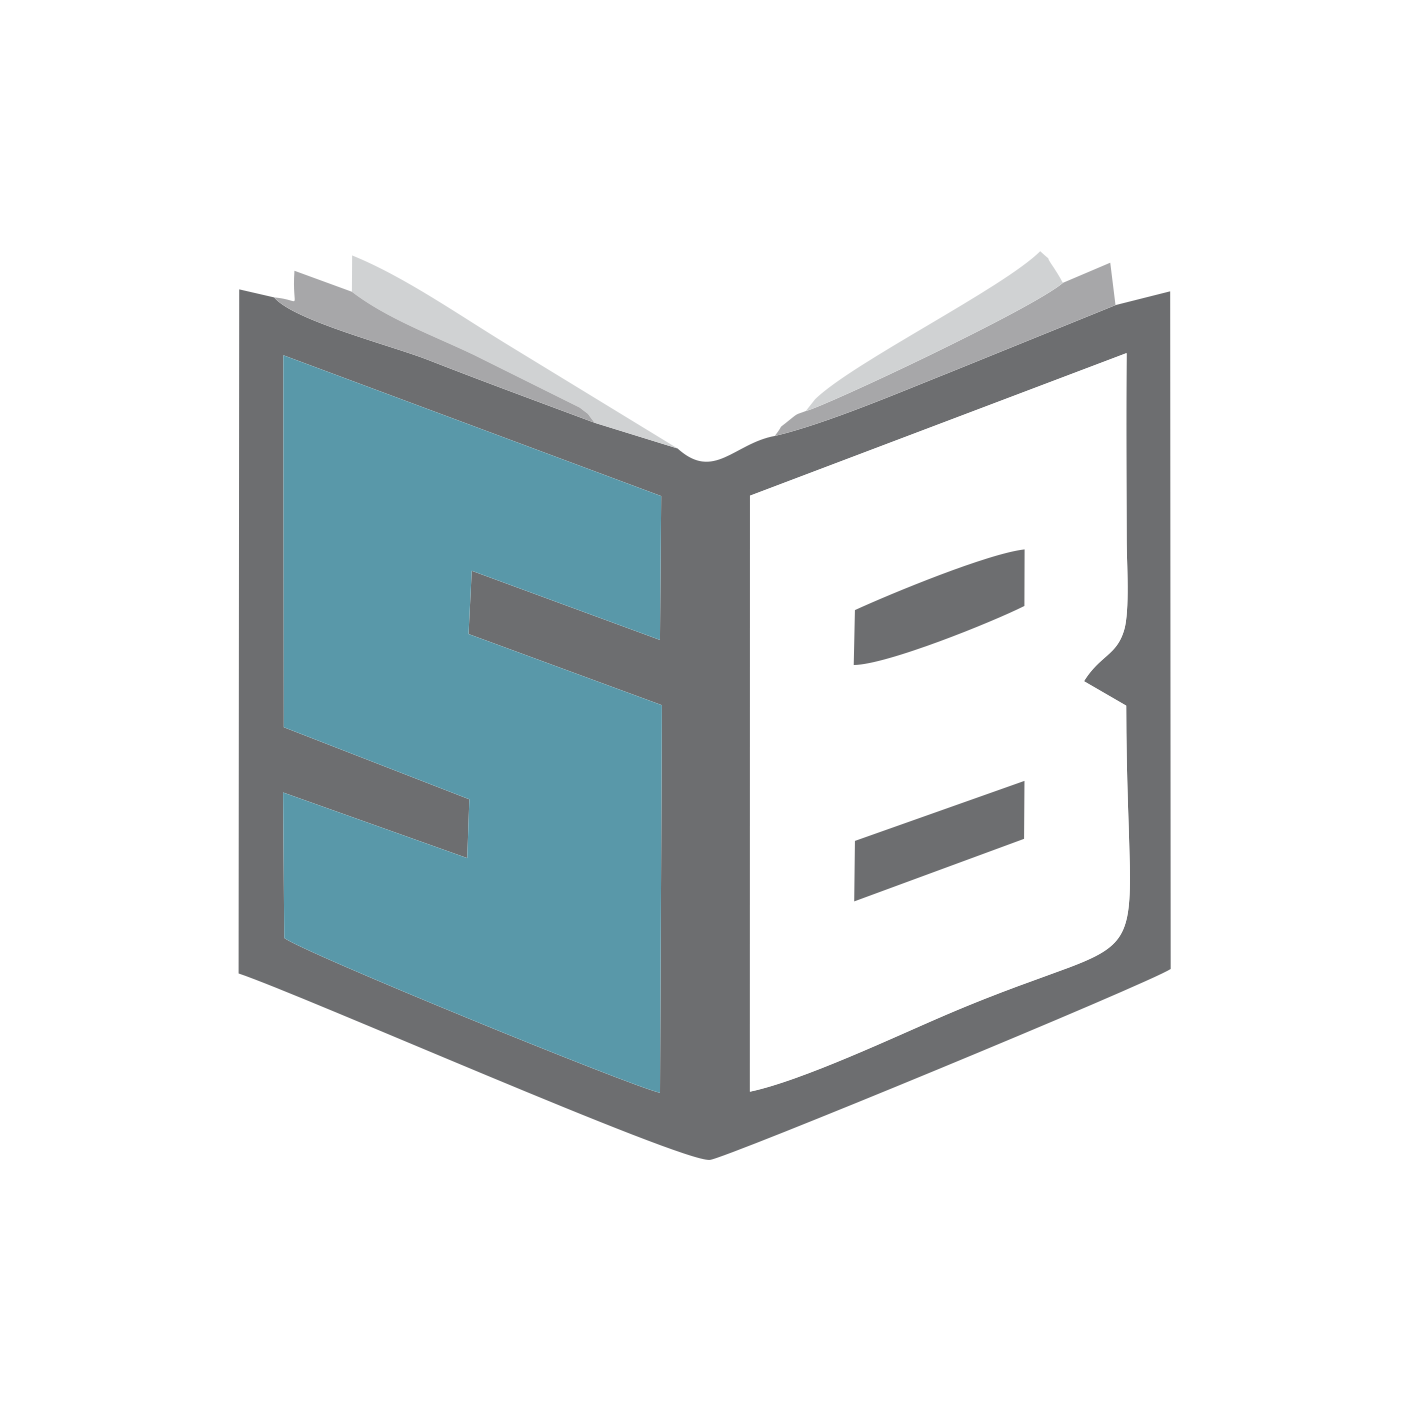 Steph's Books small logo